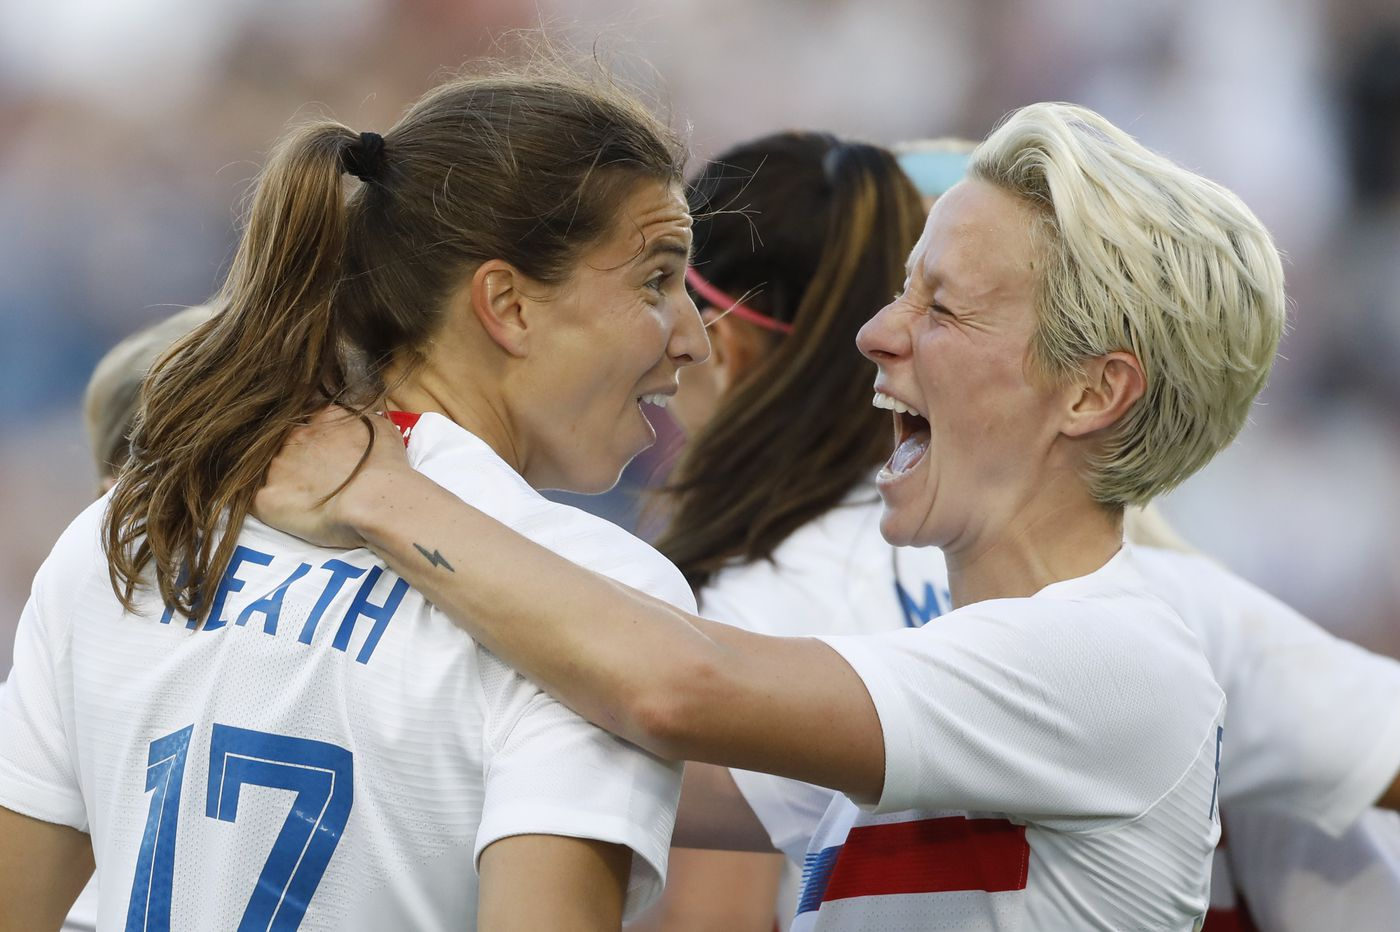 Tobin Heath, Megan Rapinoe and Lindsey Horan give the U.S. women's soccer team its swagger back